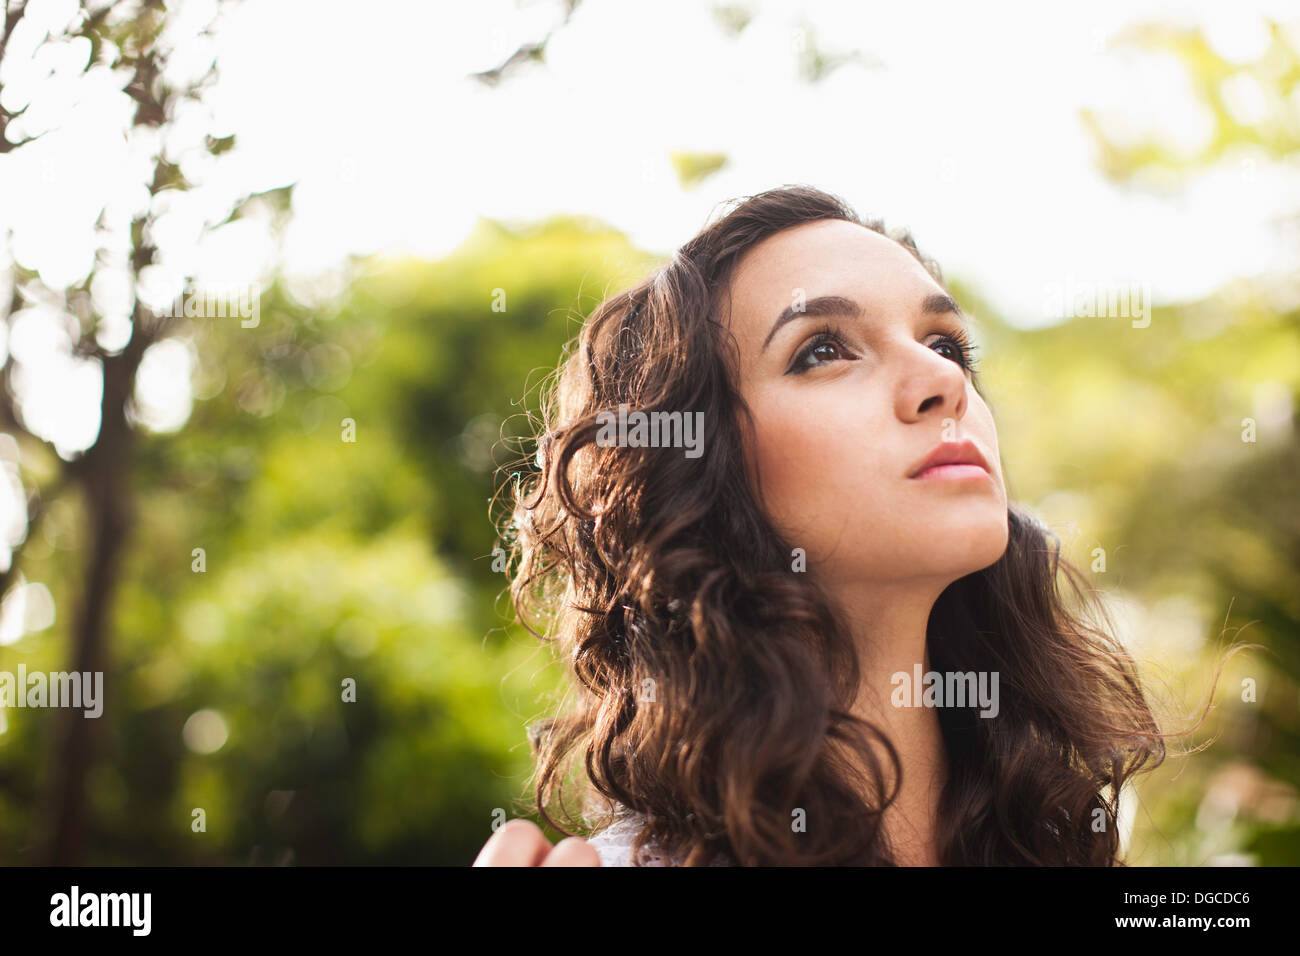 Young woman looking up, close up Stock Photo